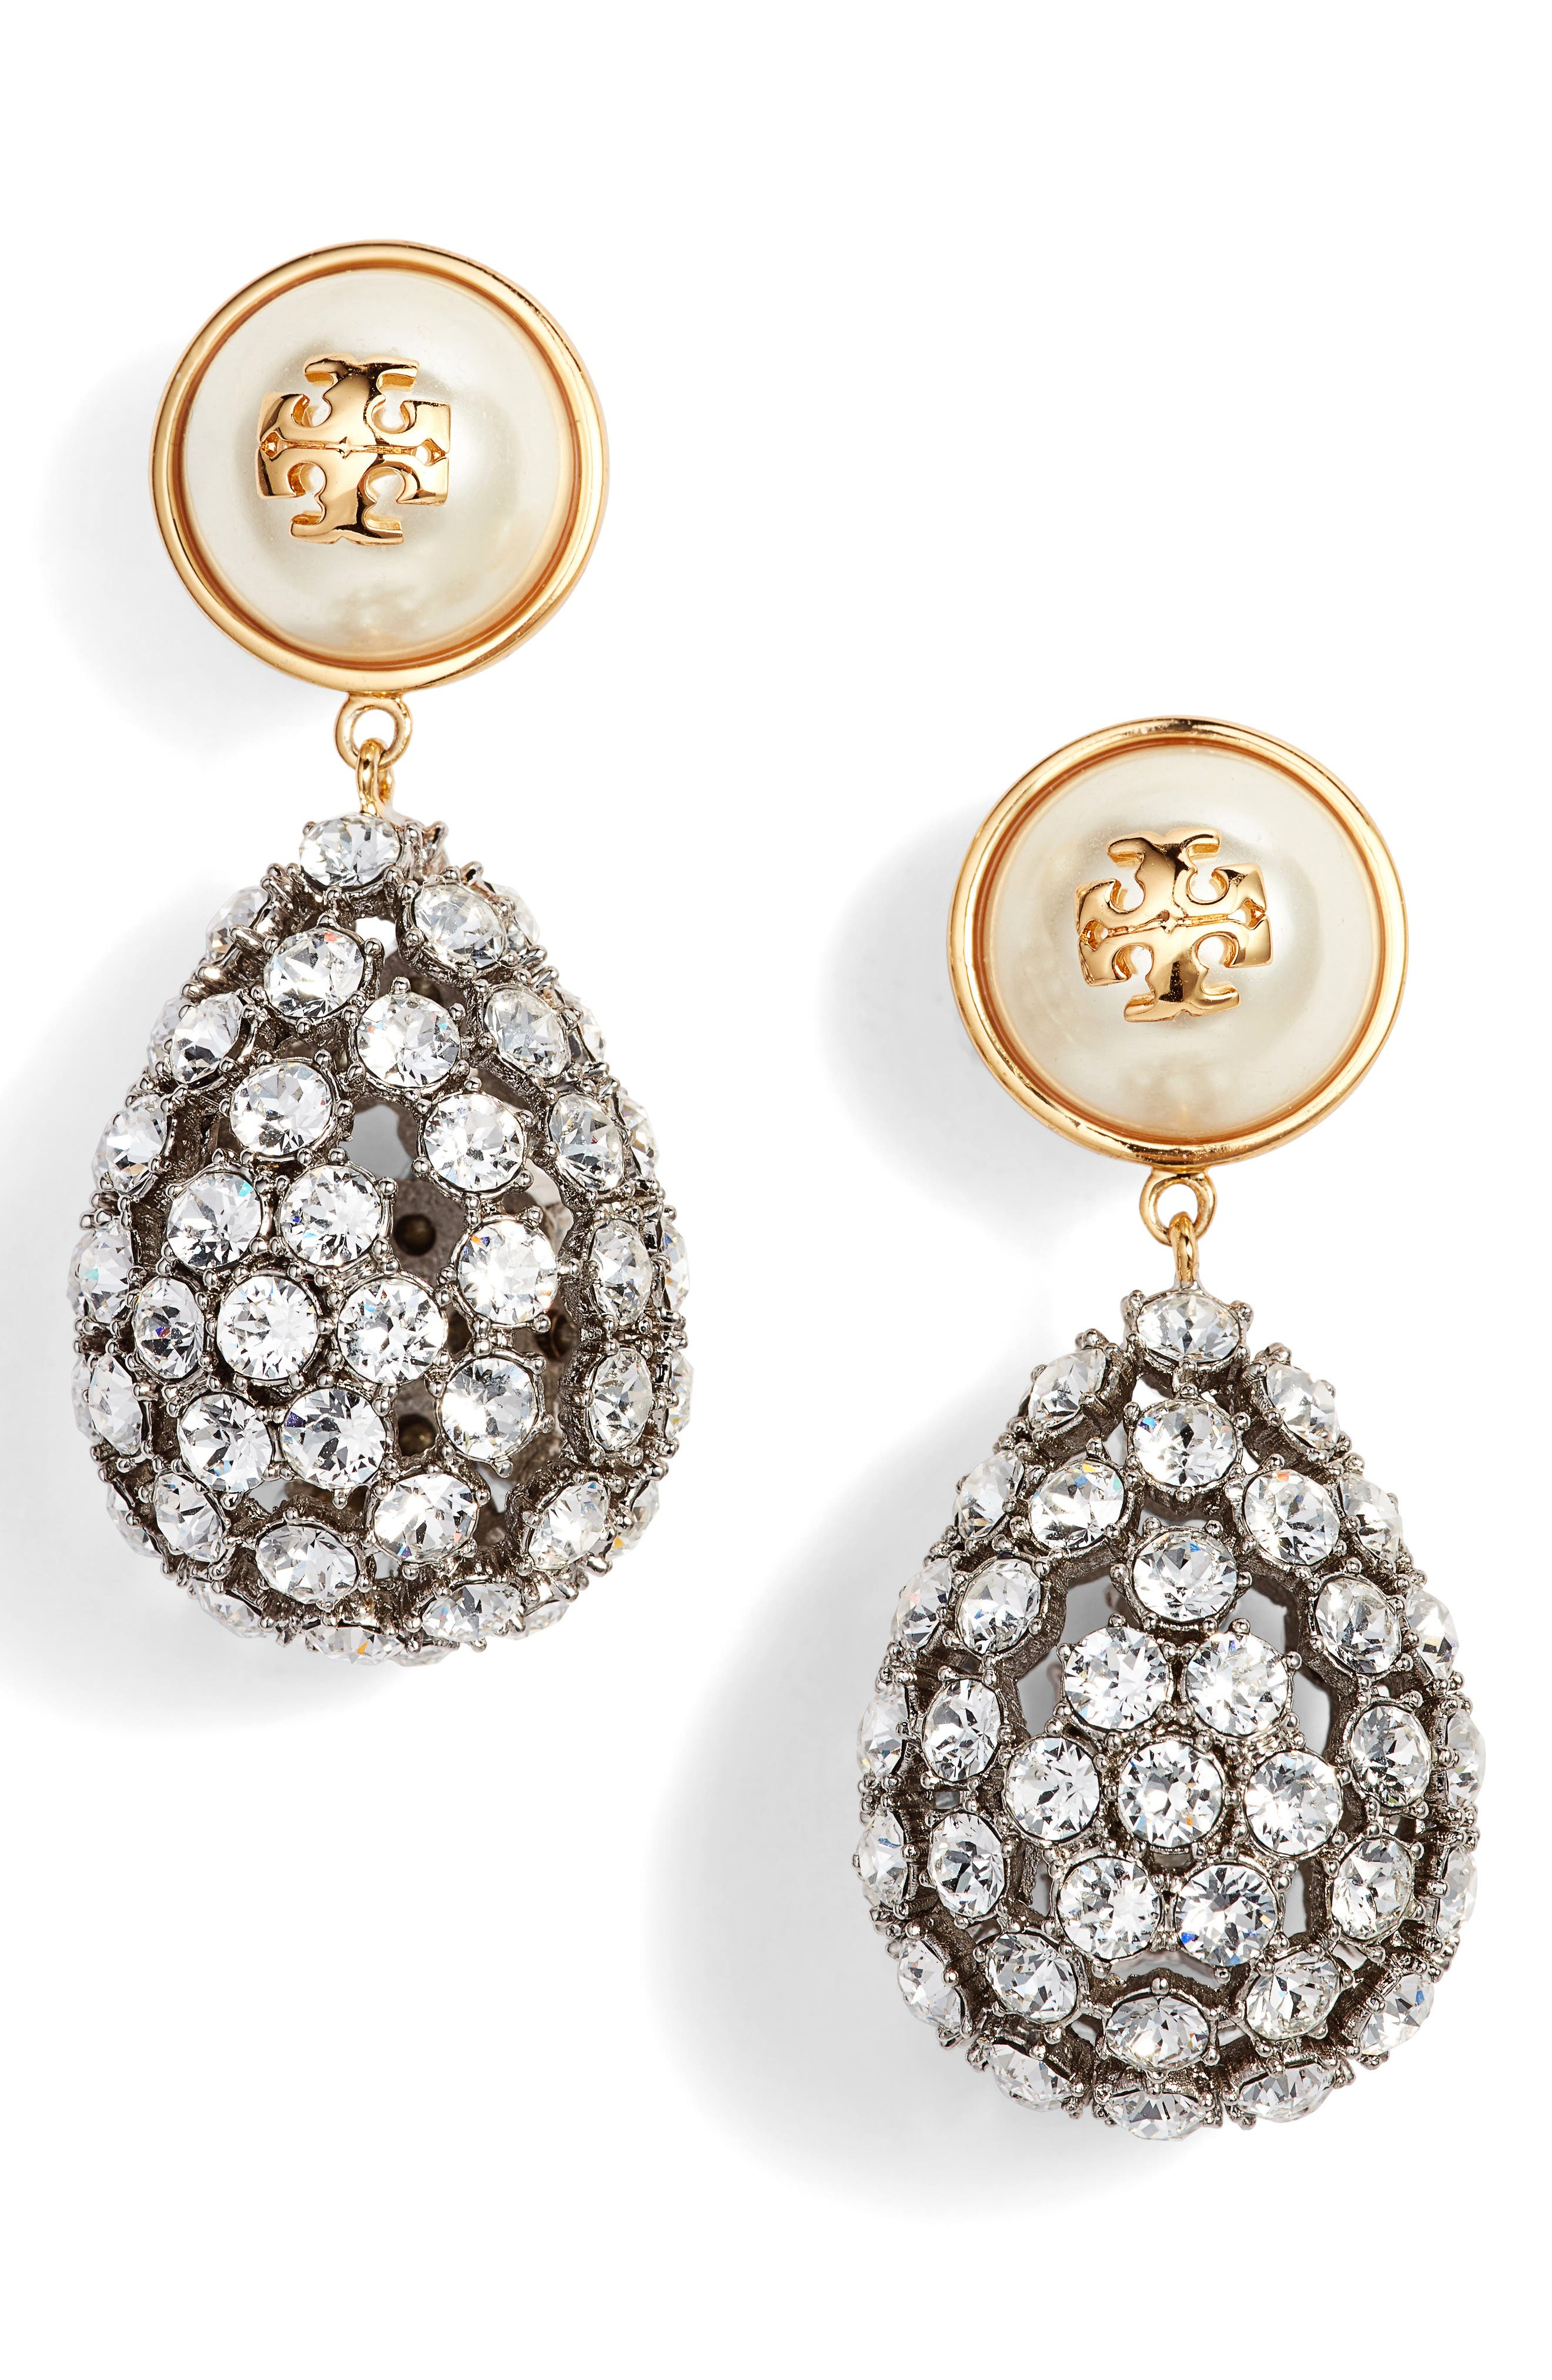 Tory Burch Imitation Pearl Statement Drop Earrings